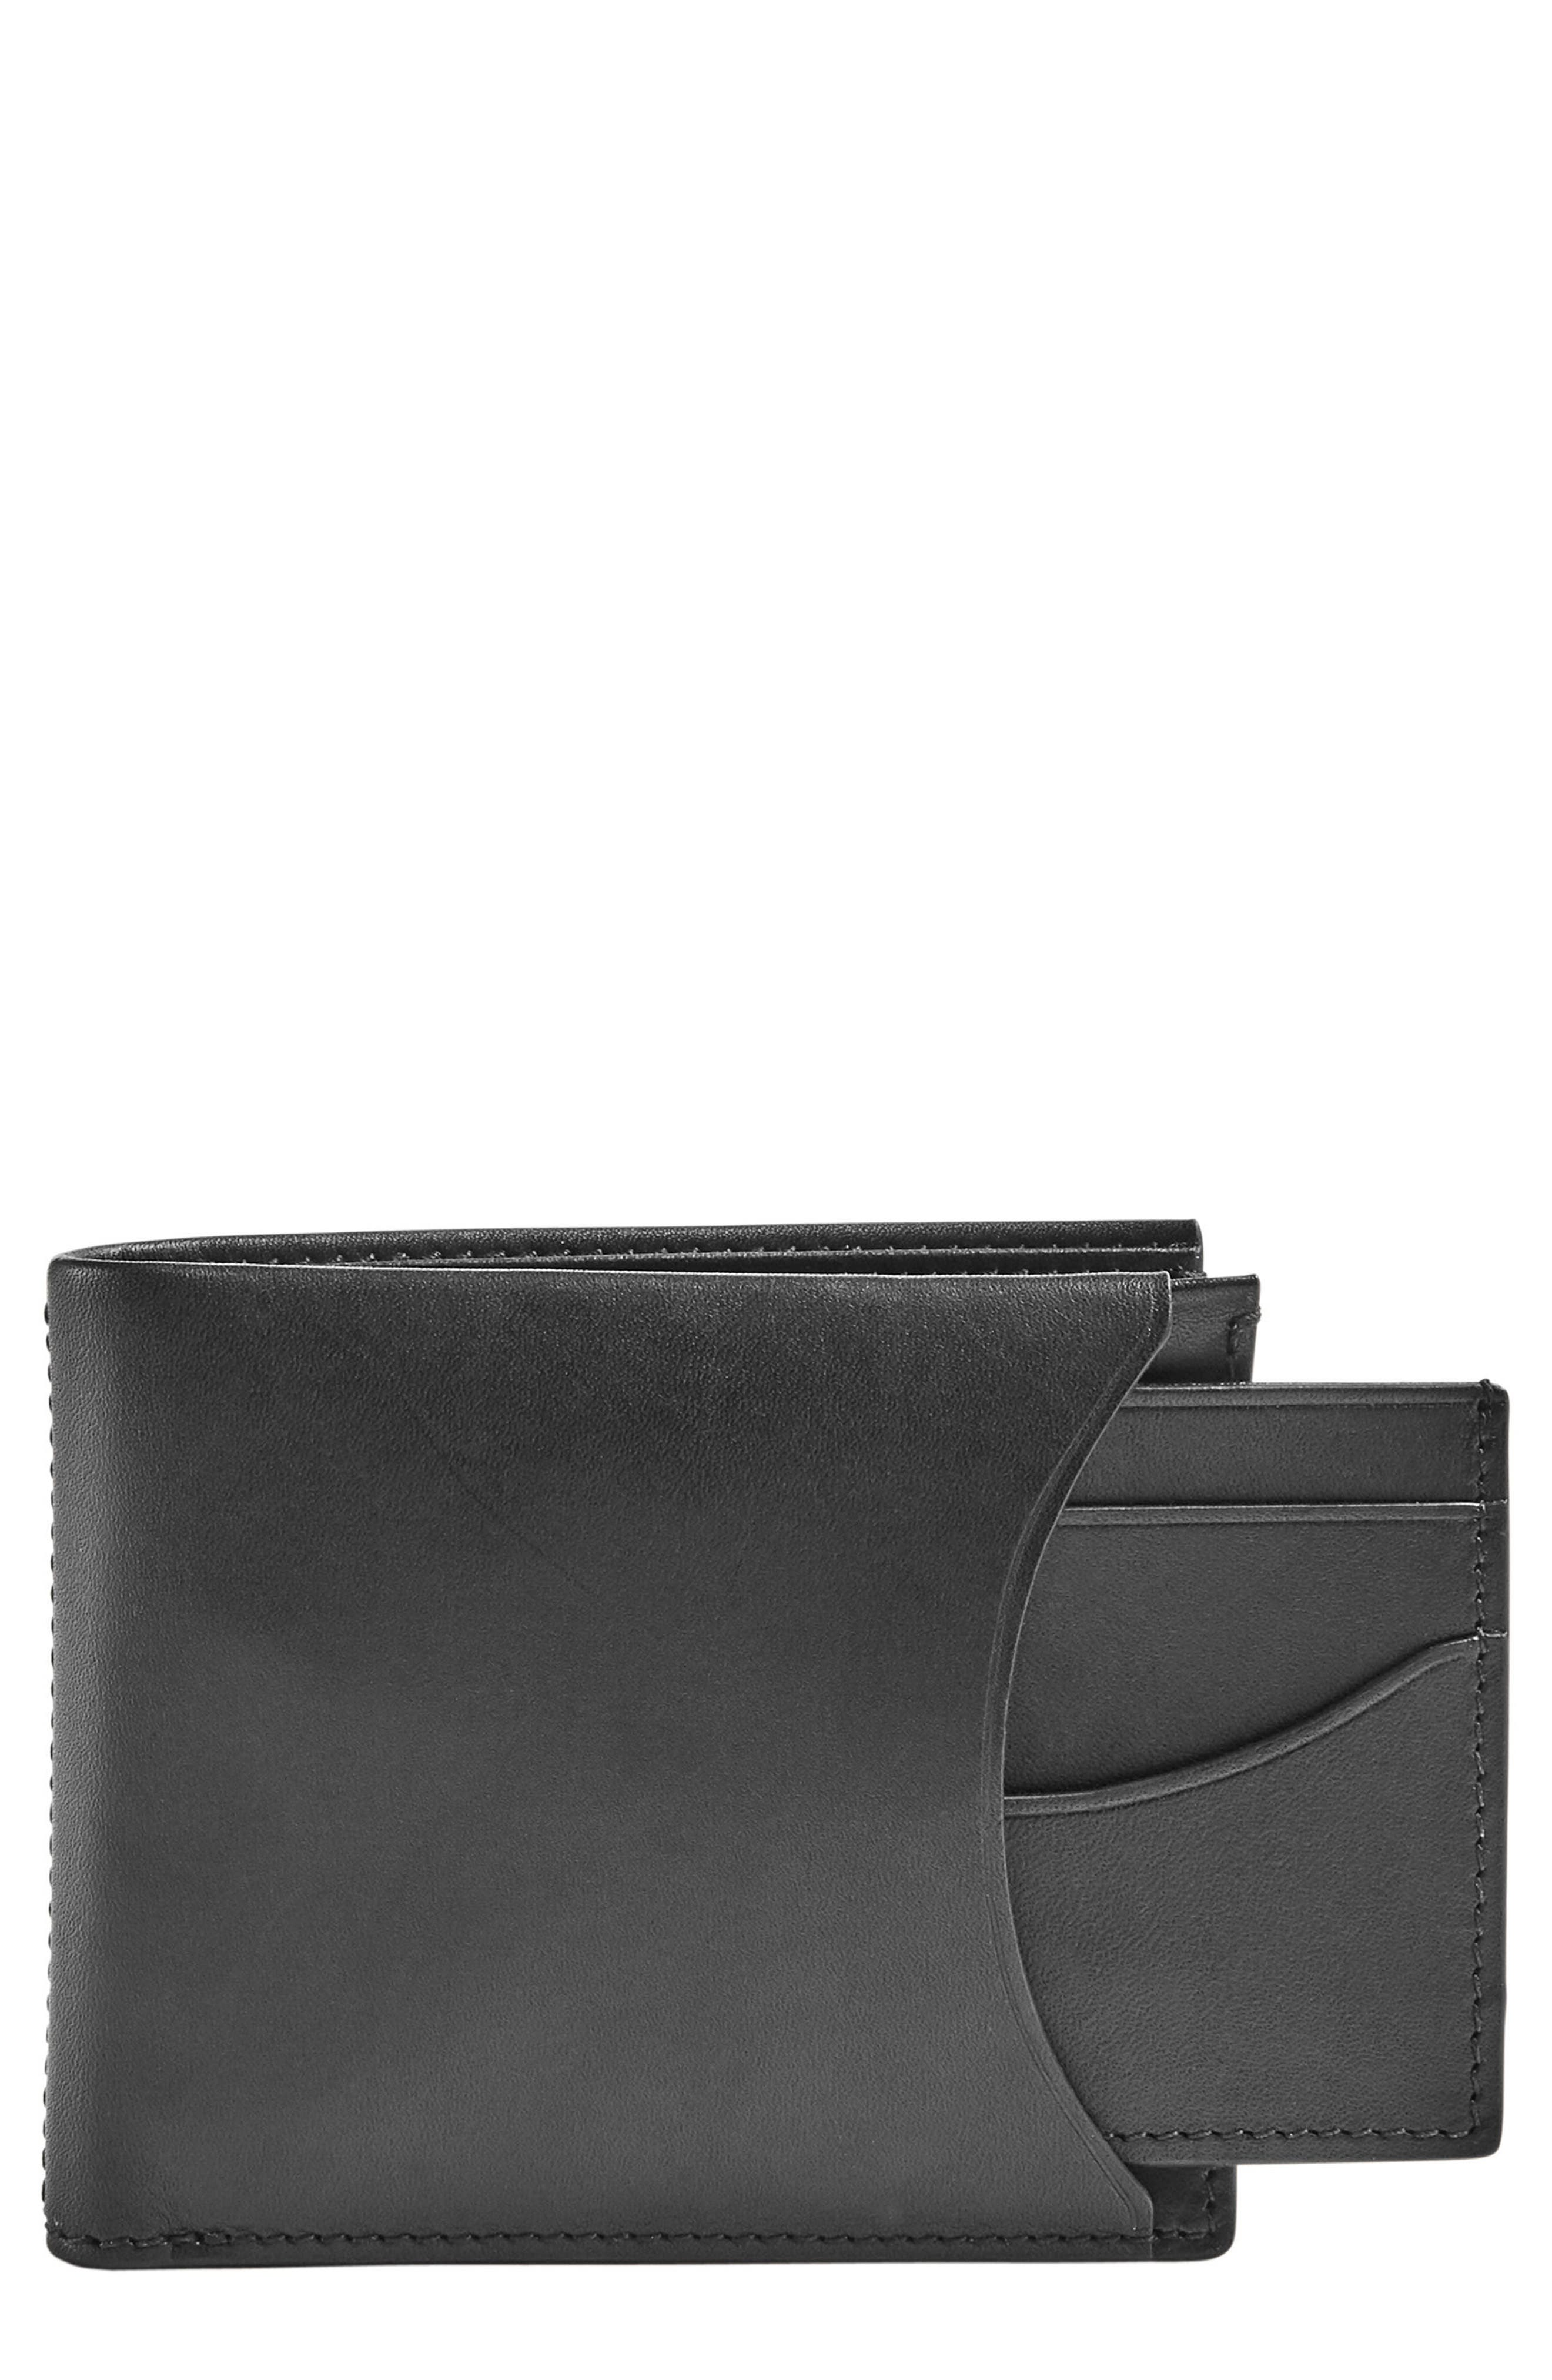 Leather Passcase Wallet,                         Main,                         color, 001